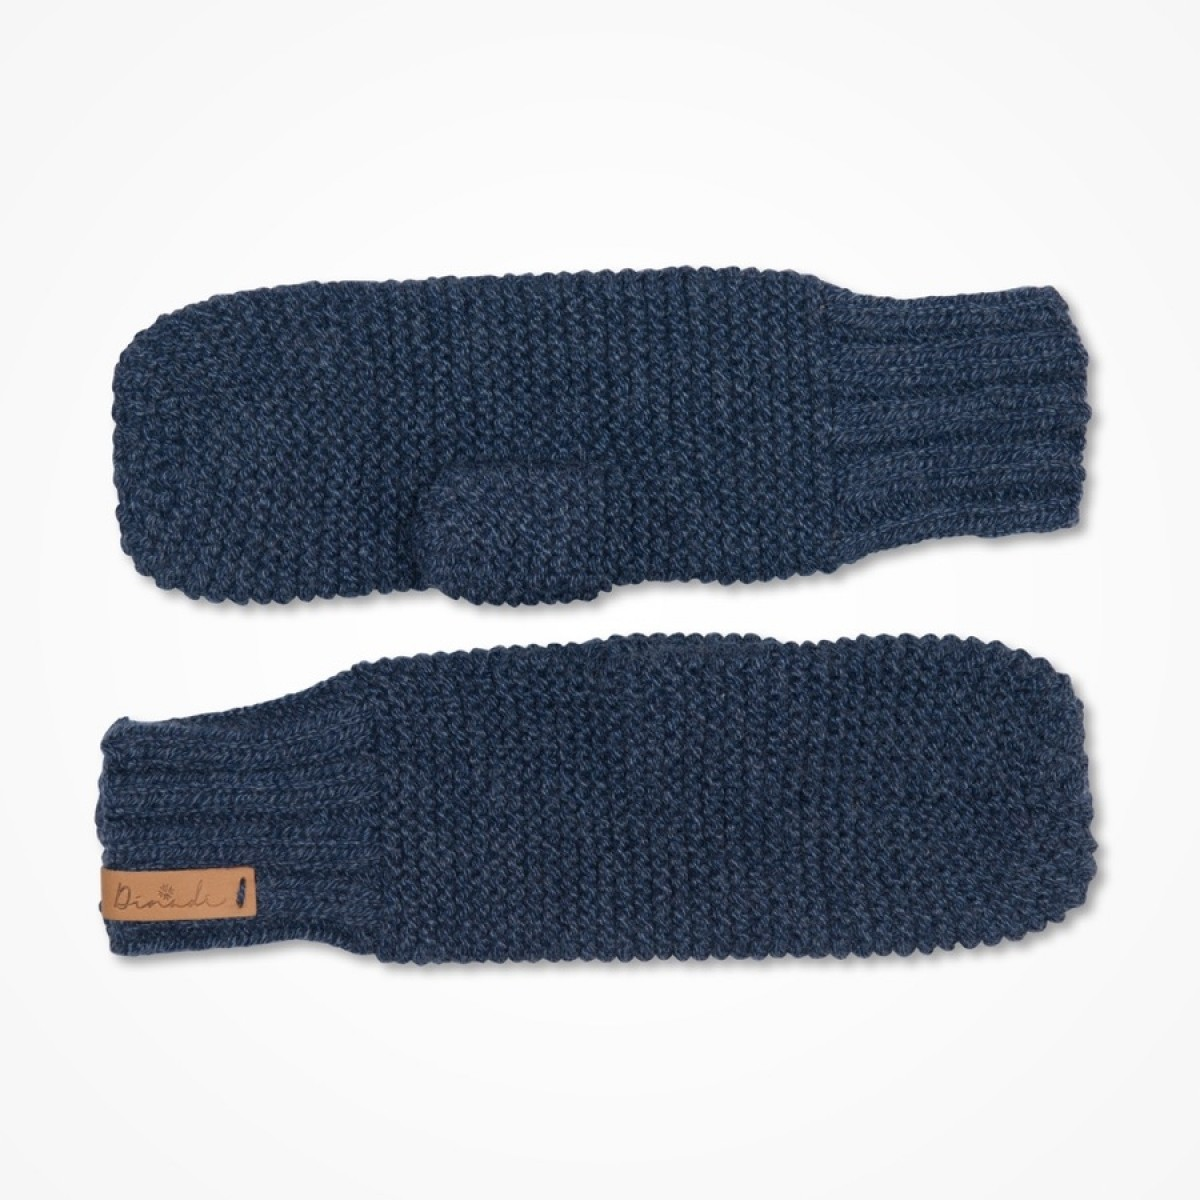 Dinadi Astrid Mittens Midnight Blue-31